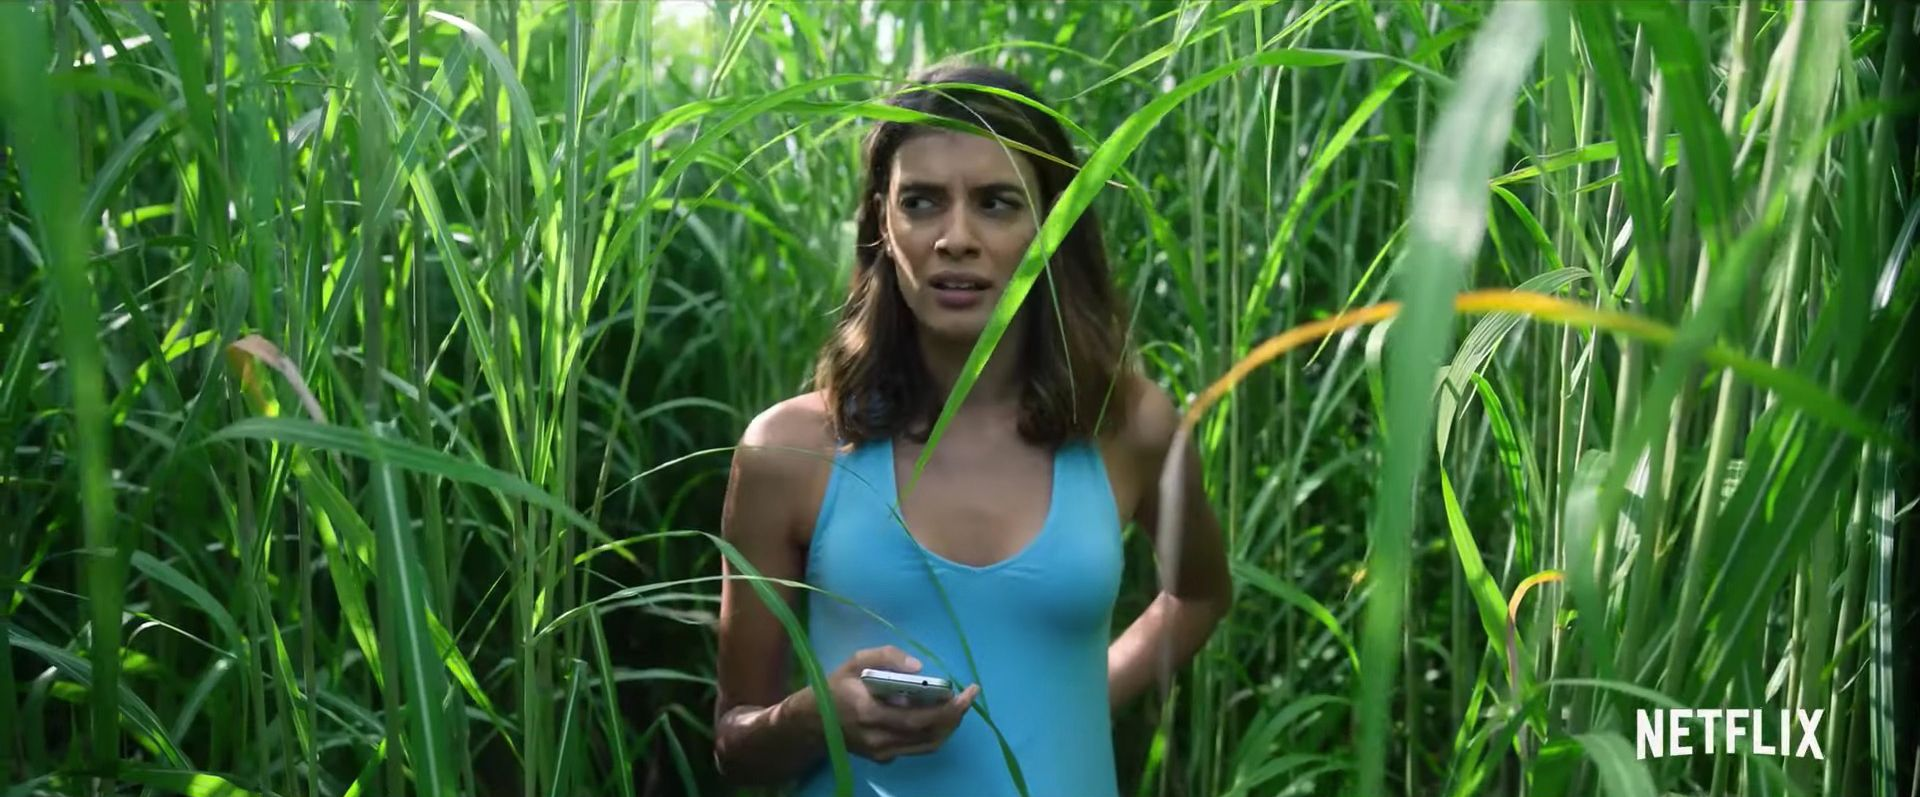 What the hell just happened in Netflix's In The Tall Grass?